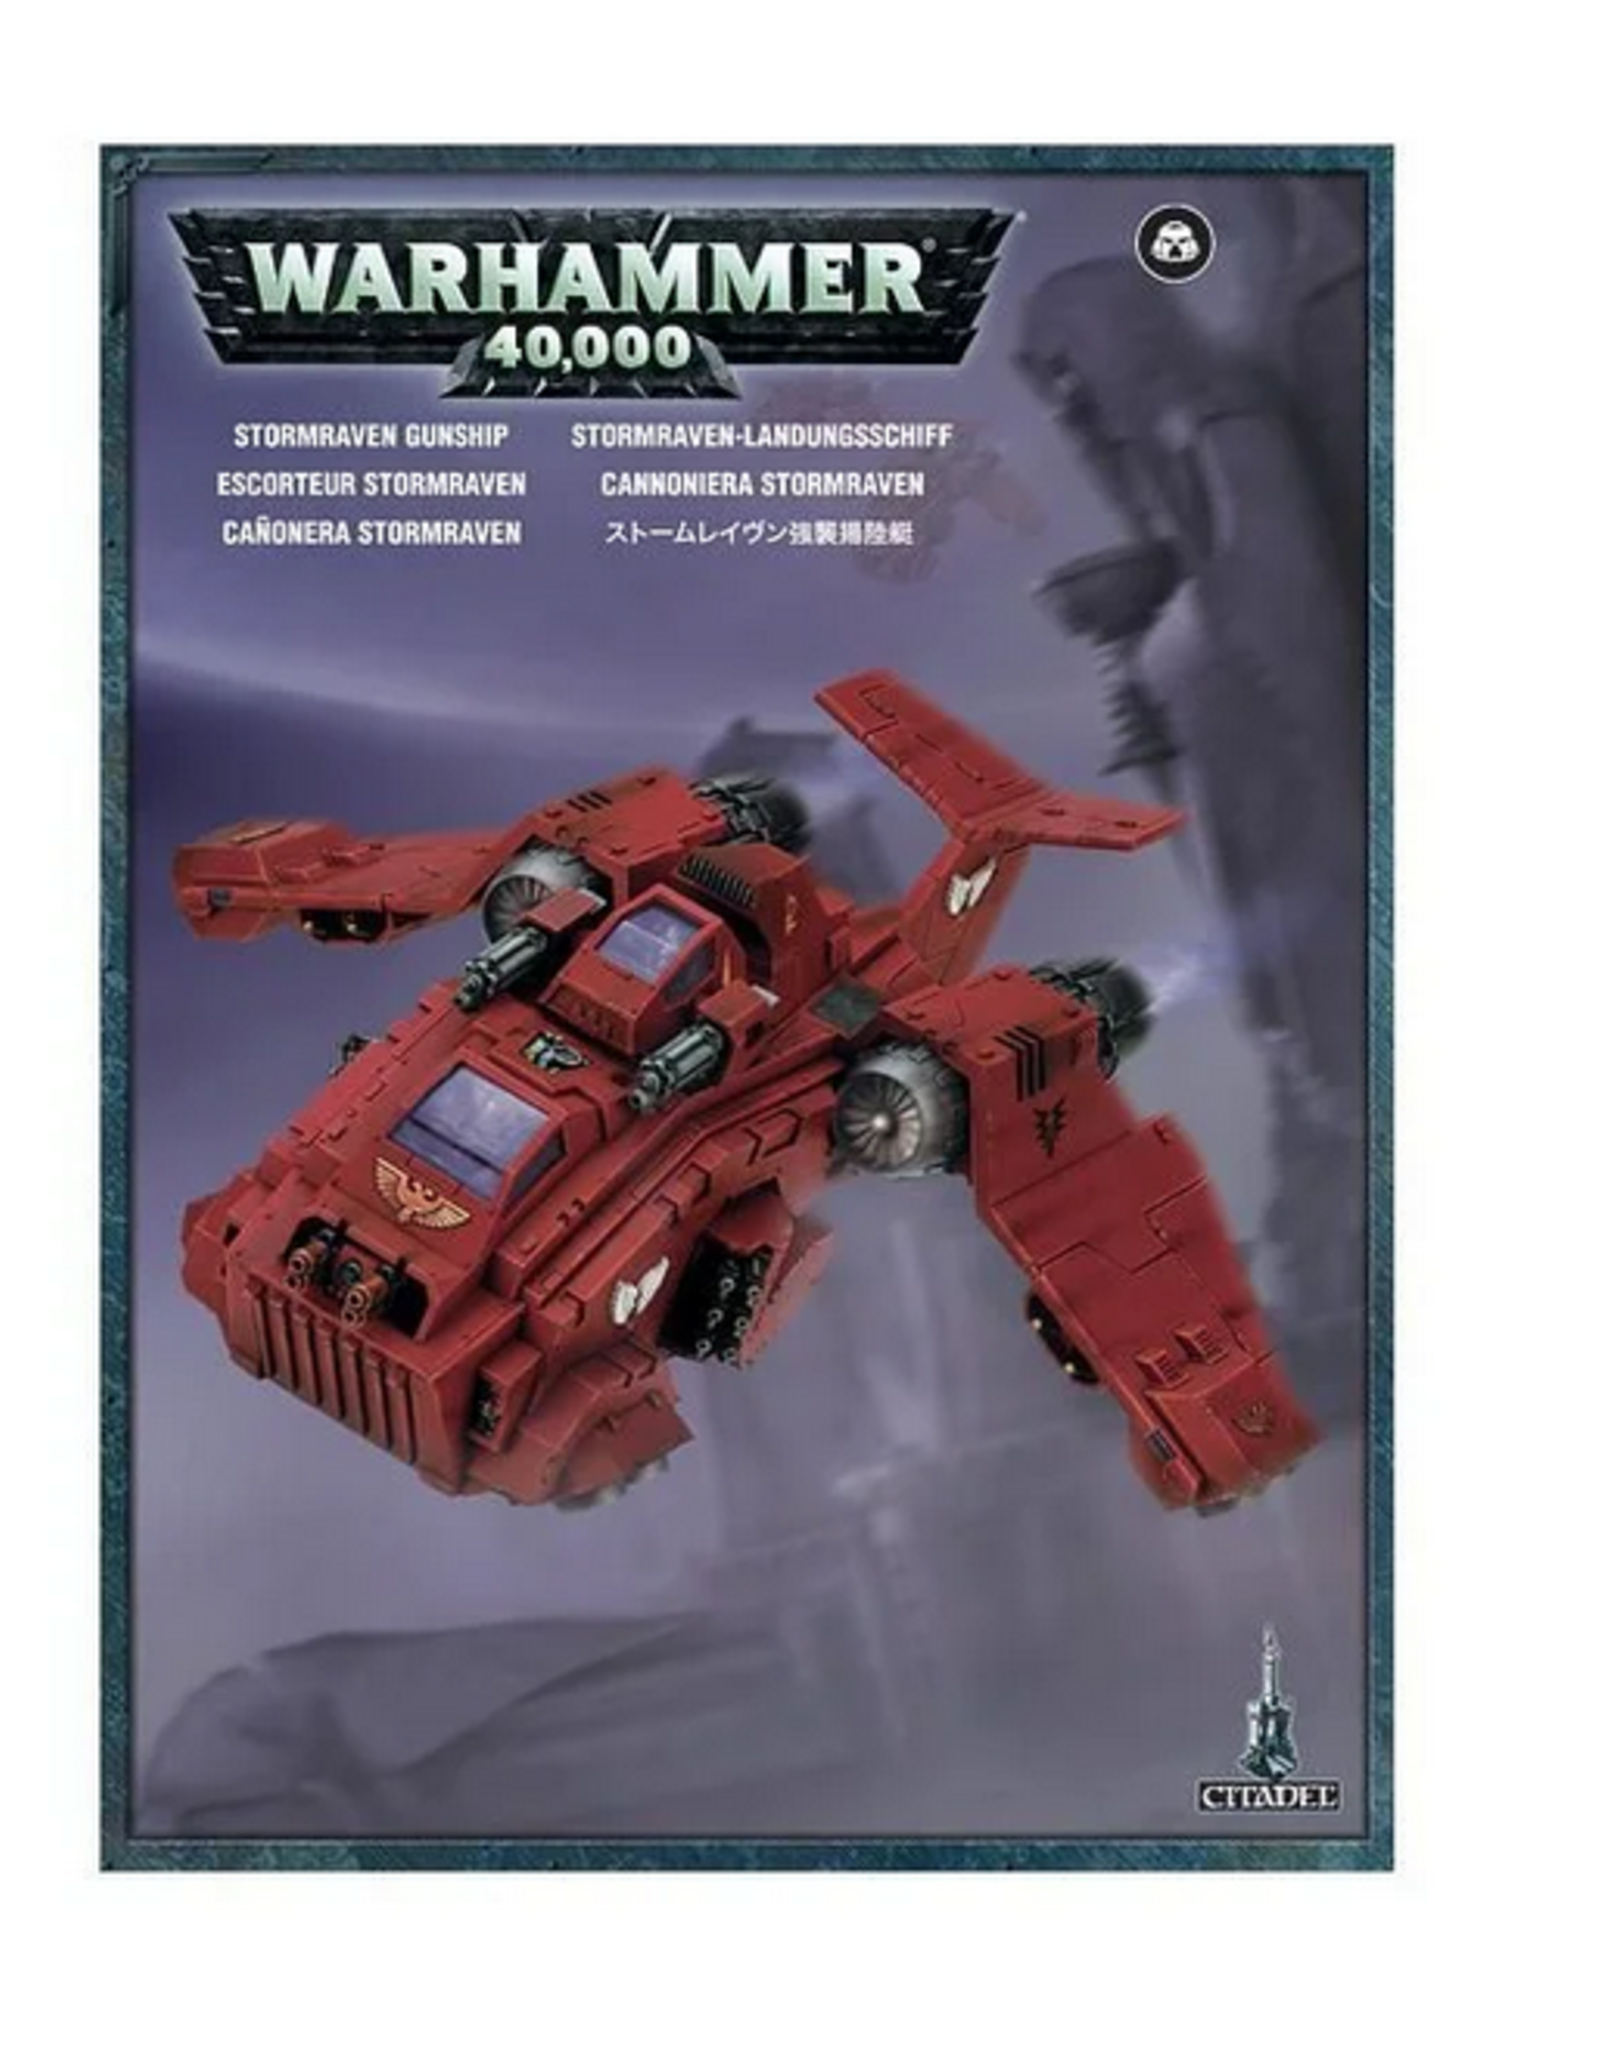 Games Workshop SM: Storm Raven Gunship